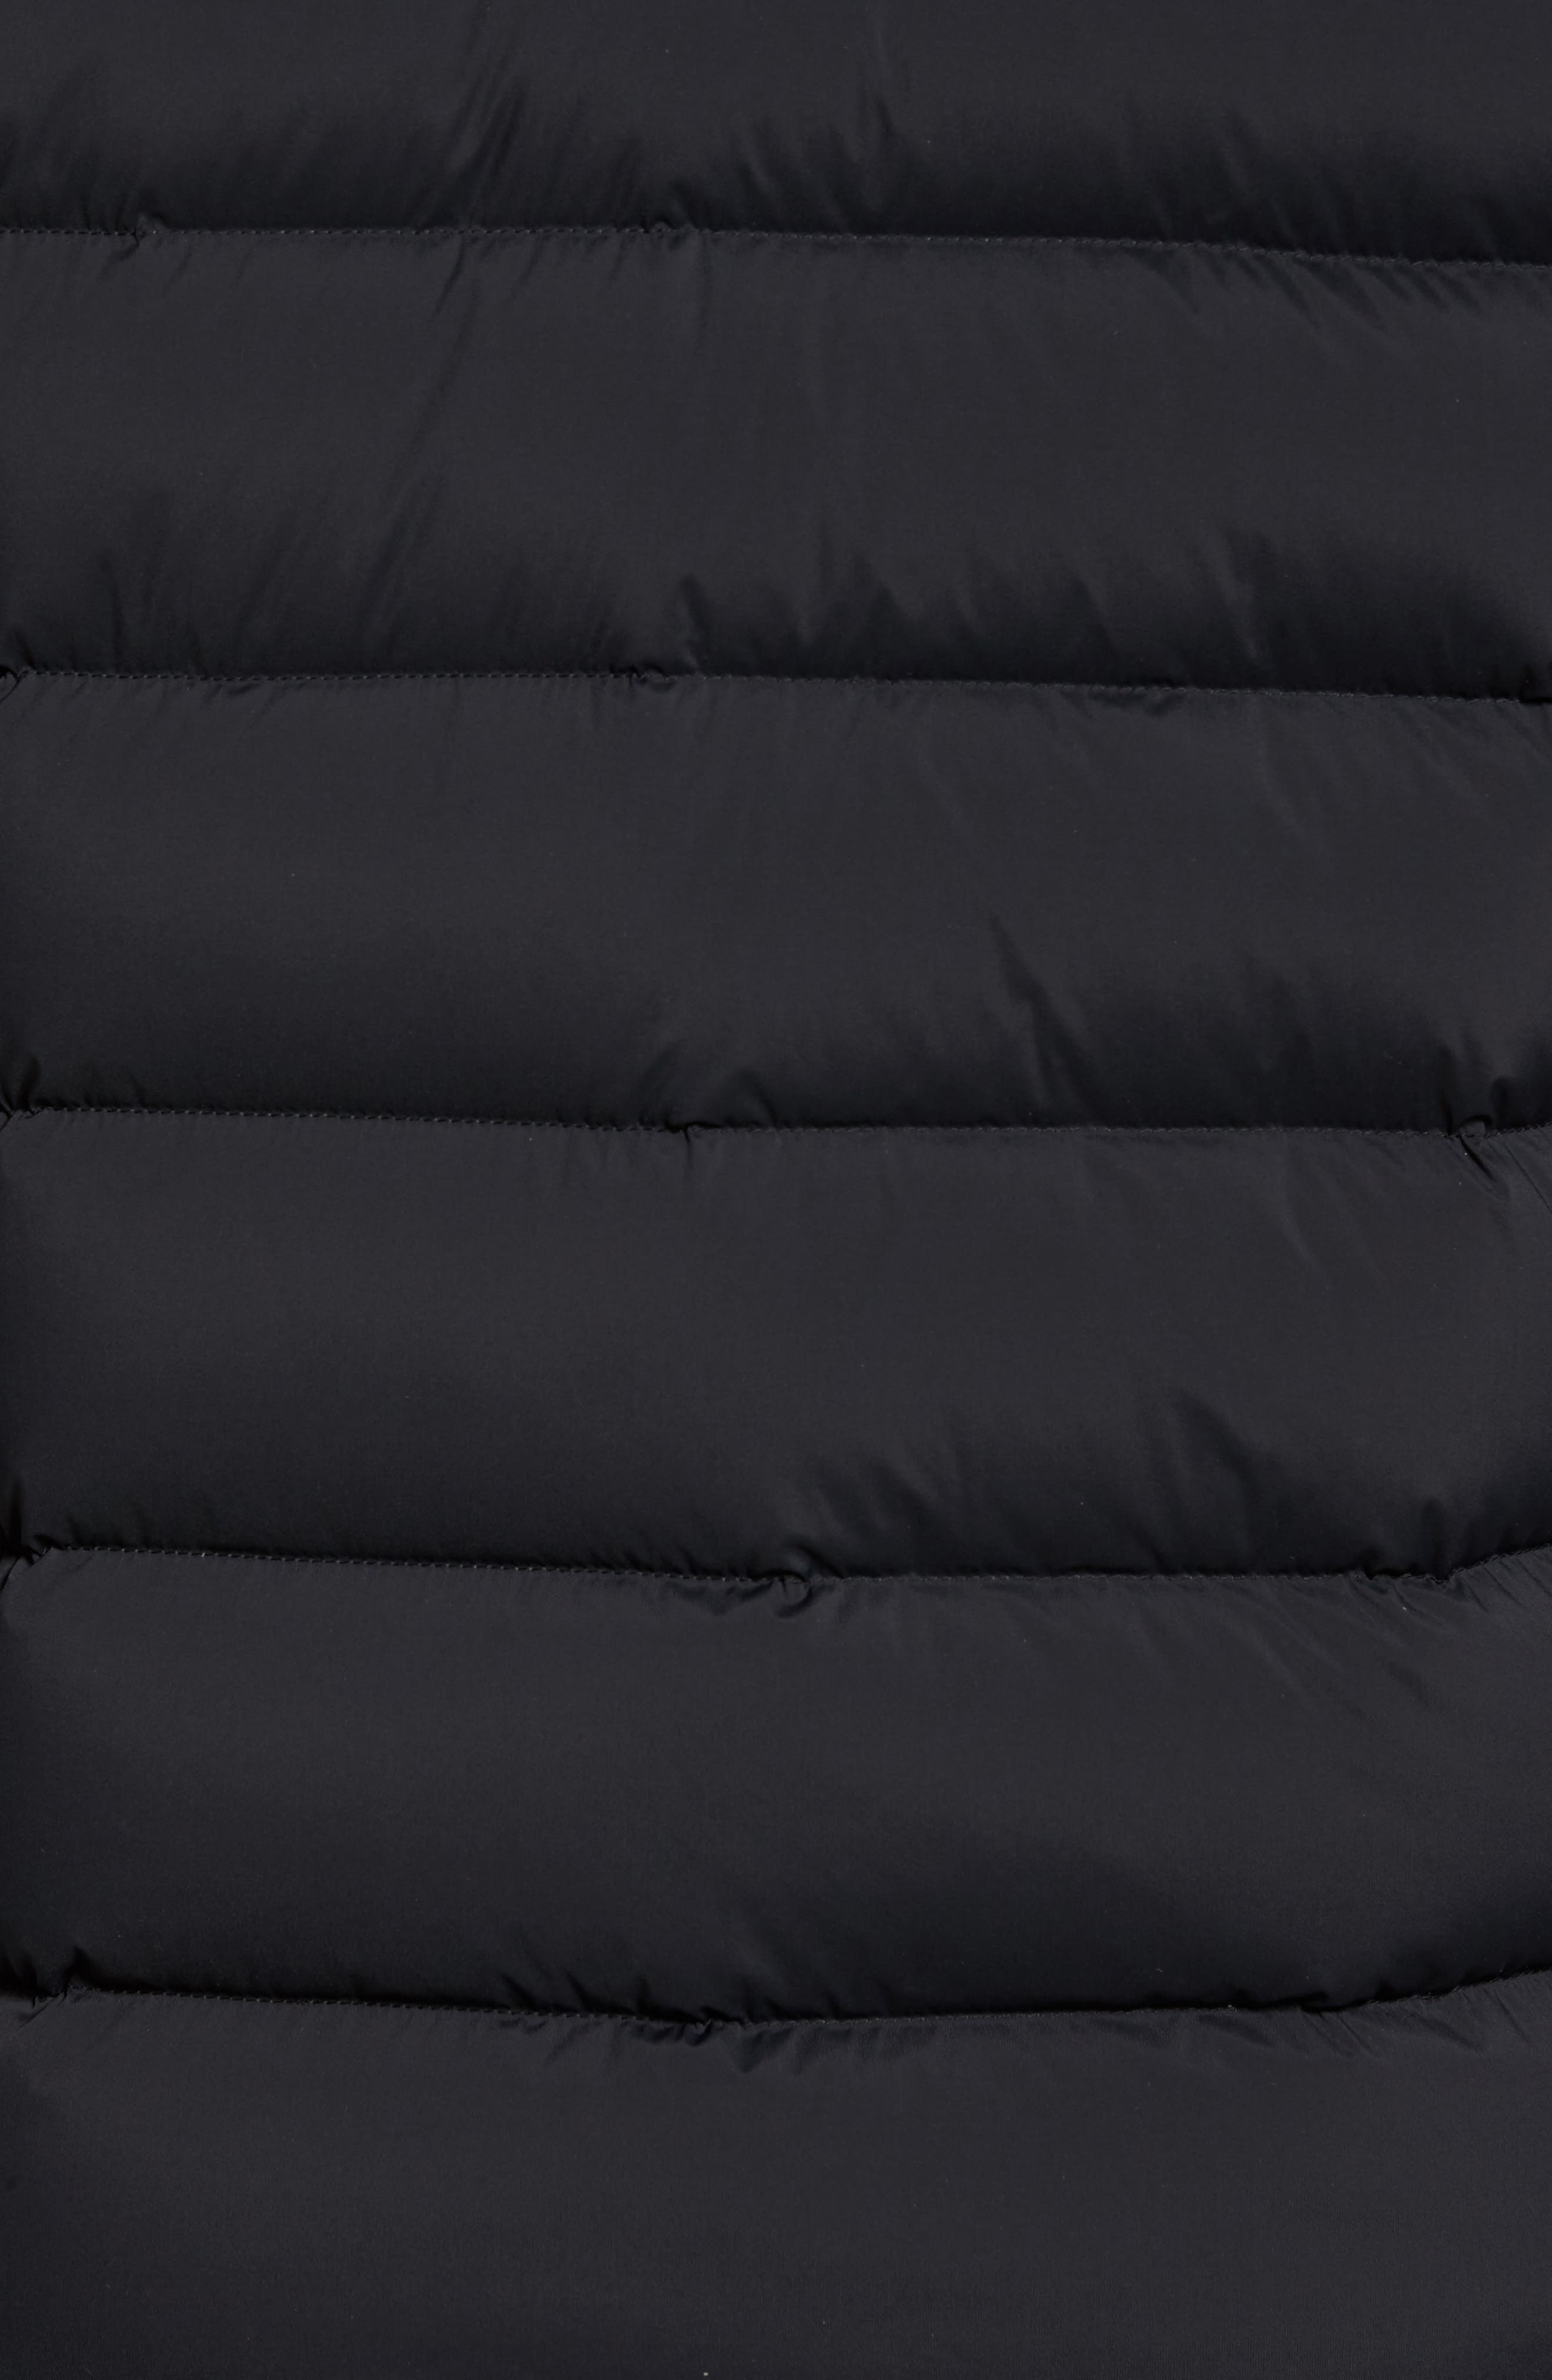 Quilted Down Jacket,                             Alternate thumbnail 5, color,                             001